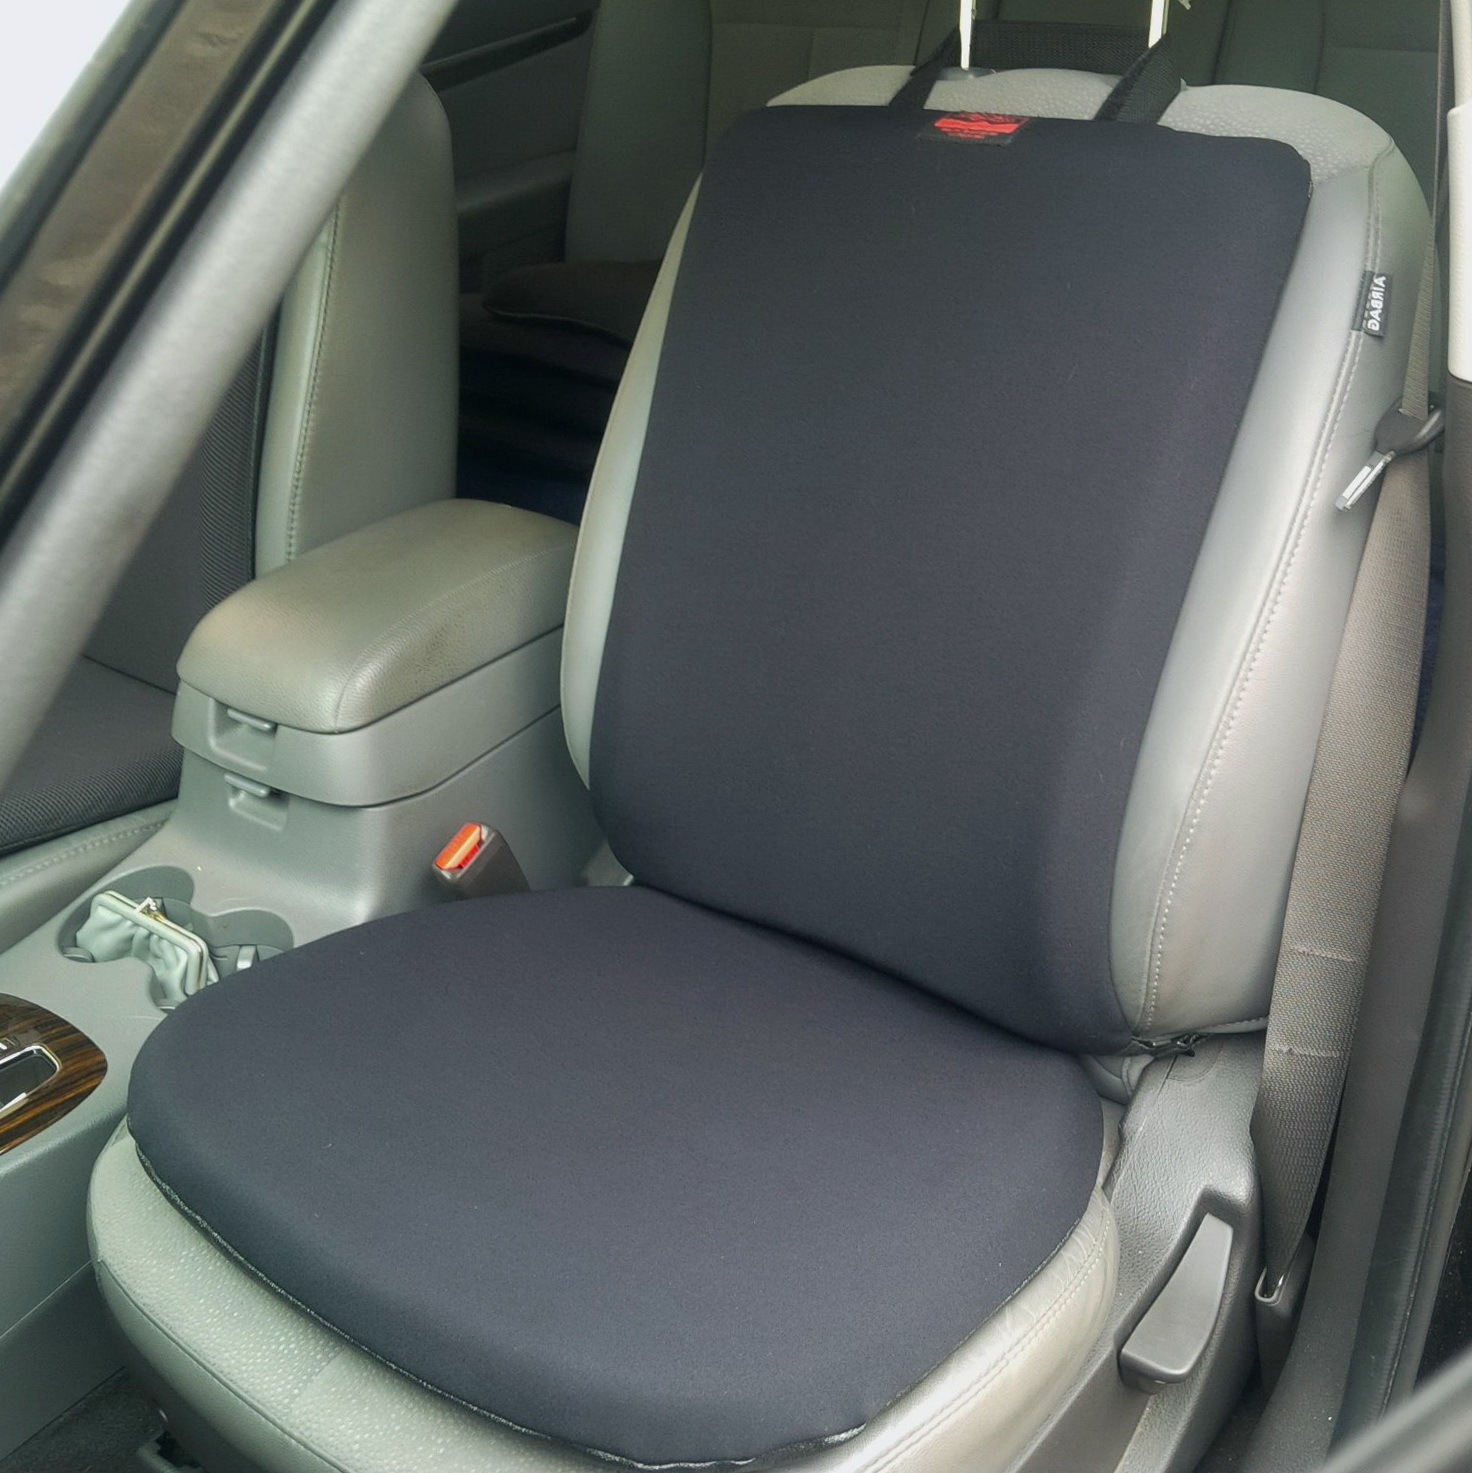 Truck Seat Cushion Reviews  Home Design Ideas